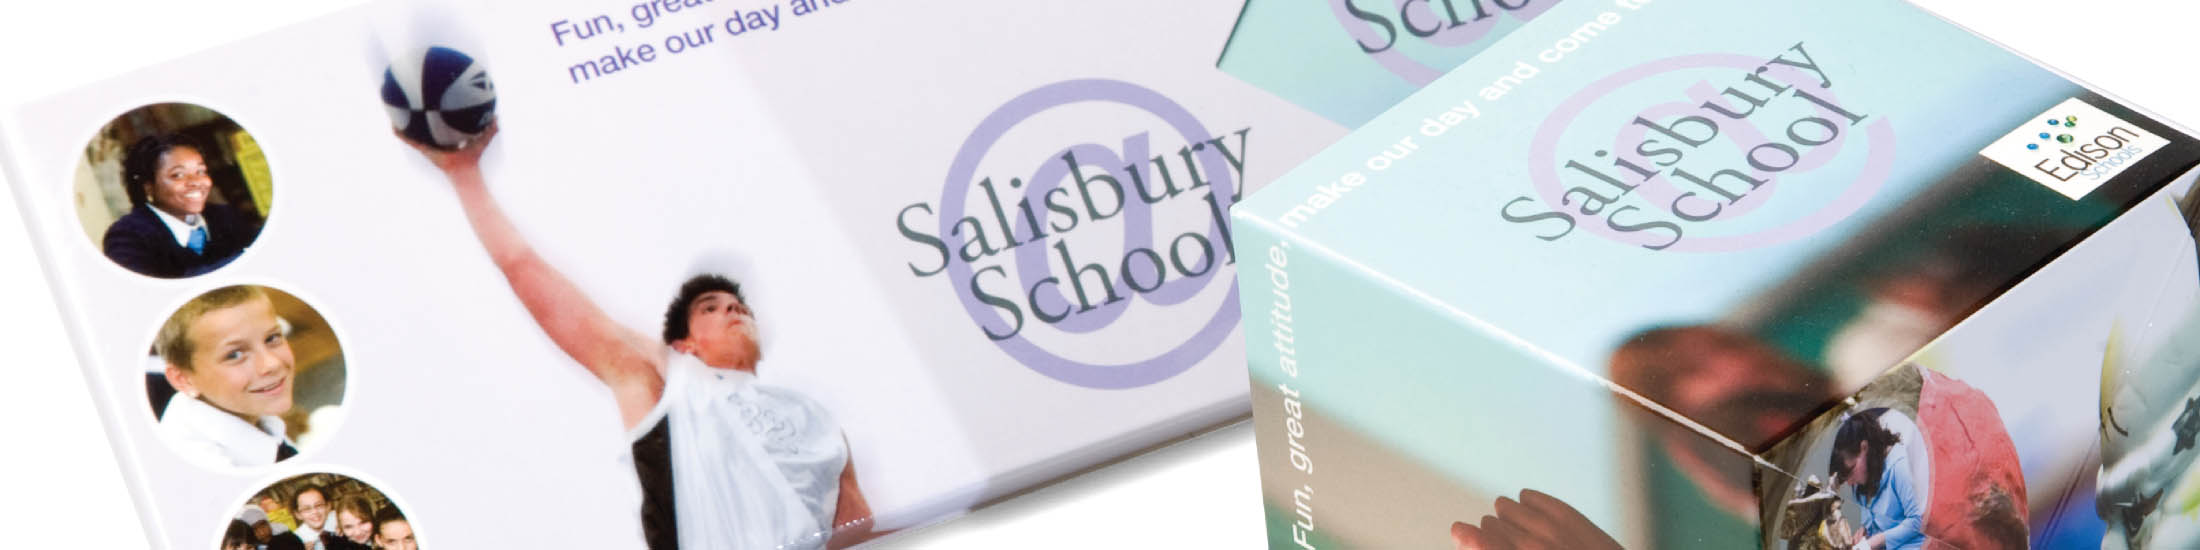 Salisbury School promotional items